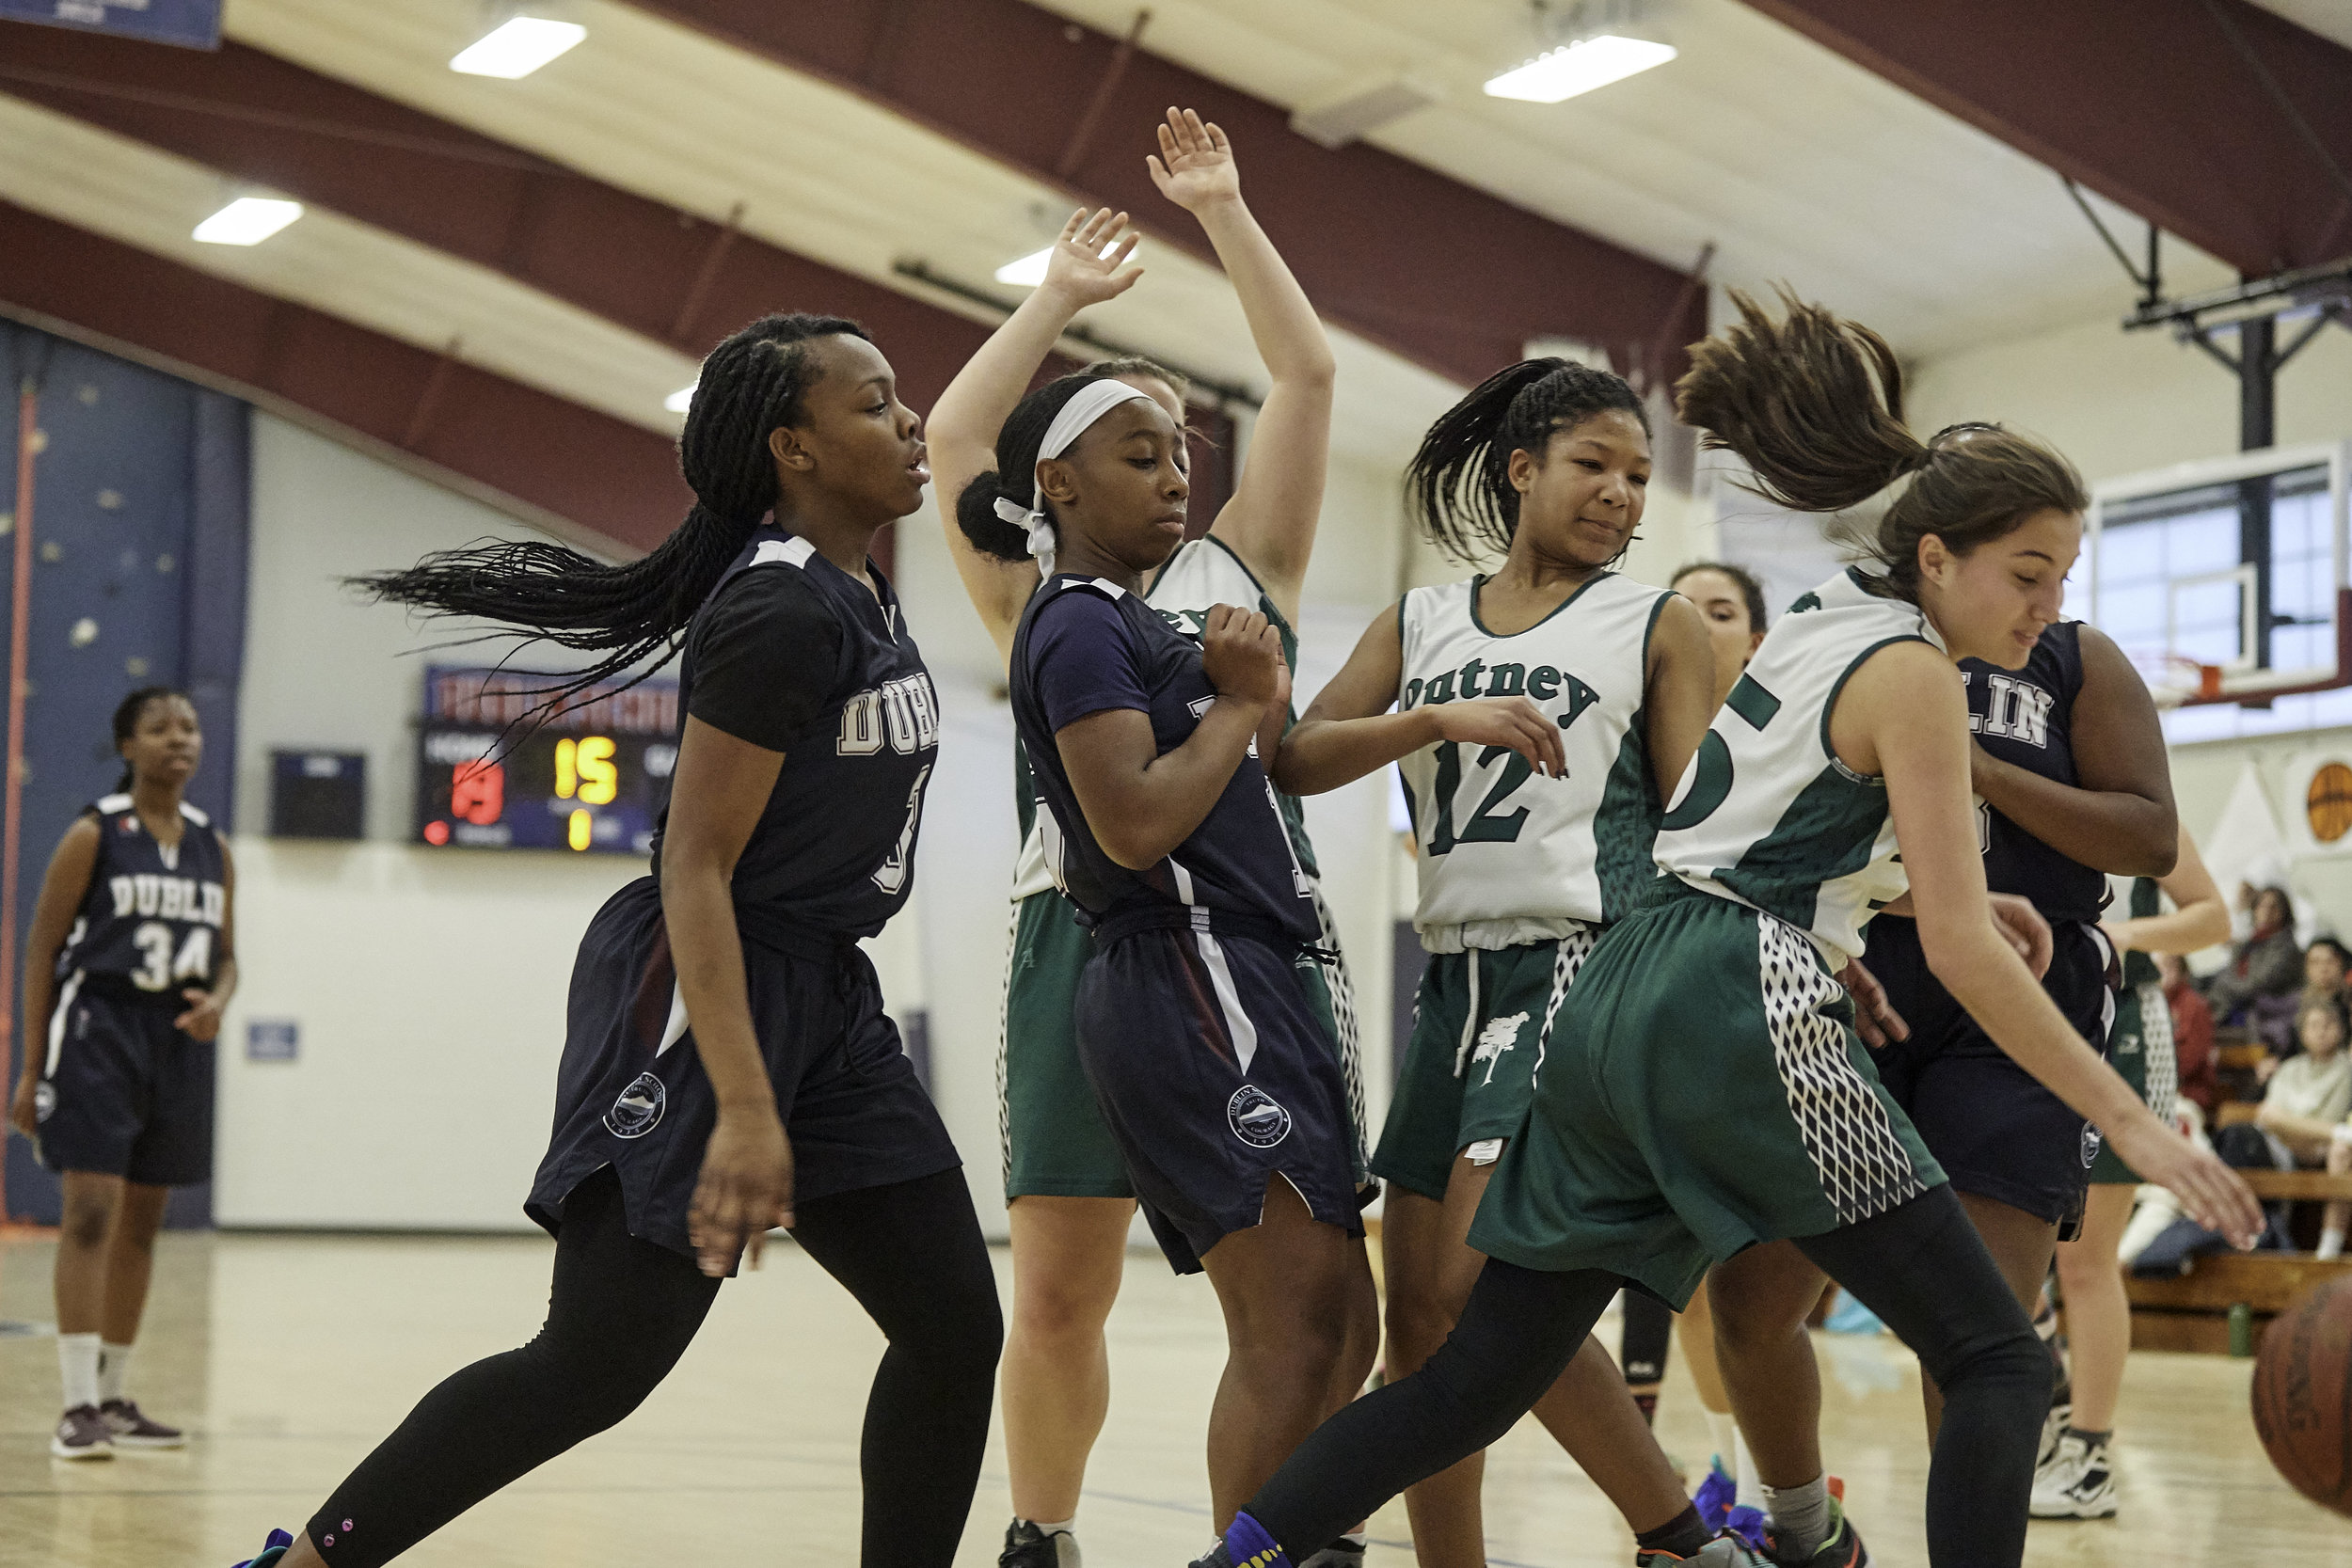 Basketball vs Putney School, February 9, 2019 - 167309.jpg